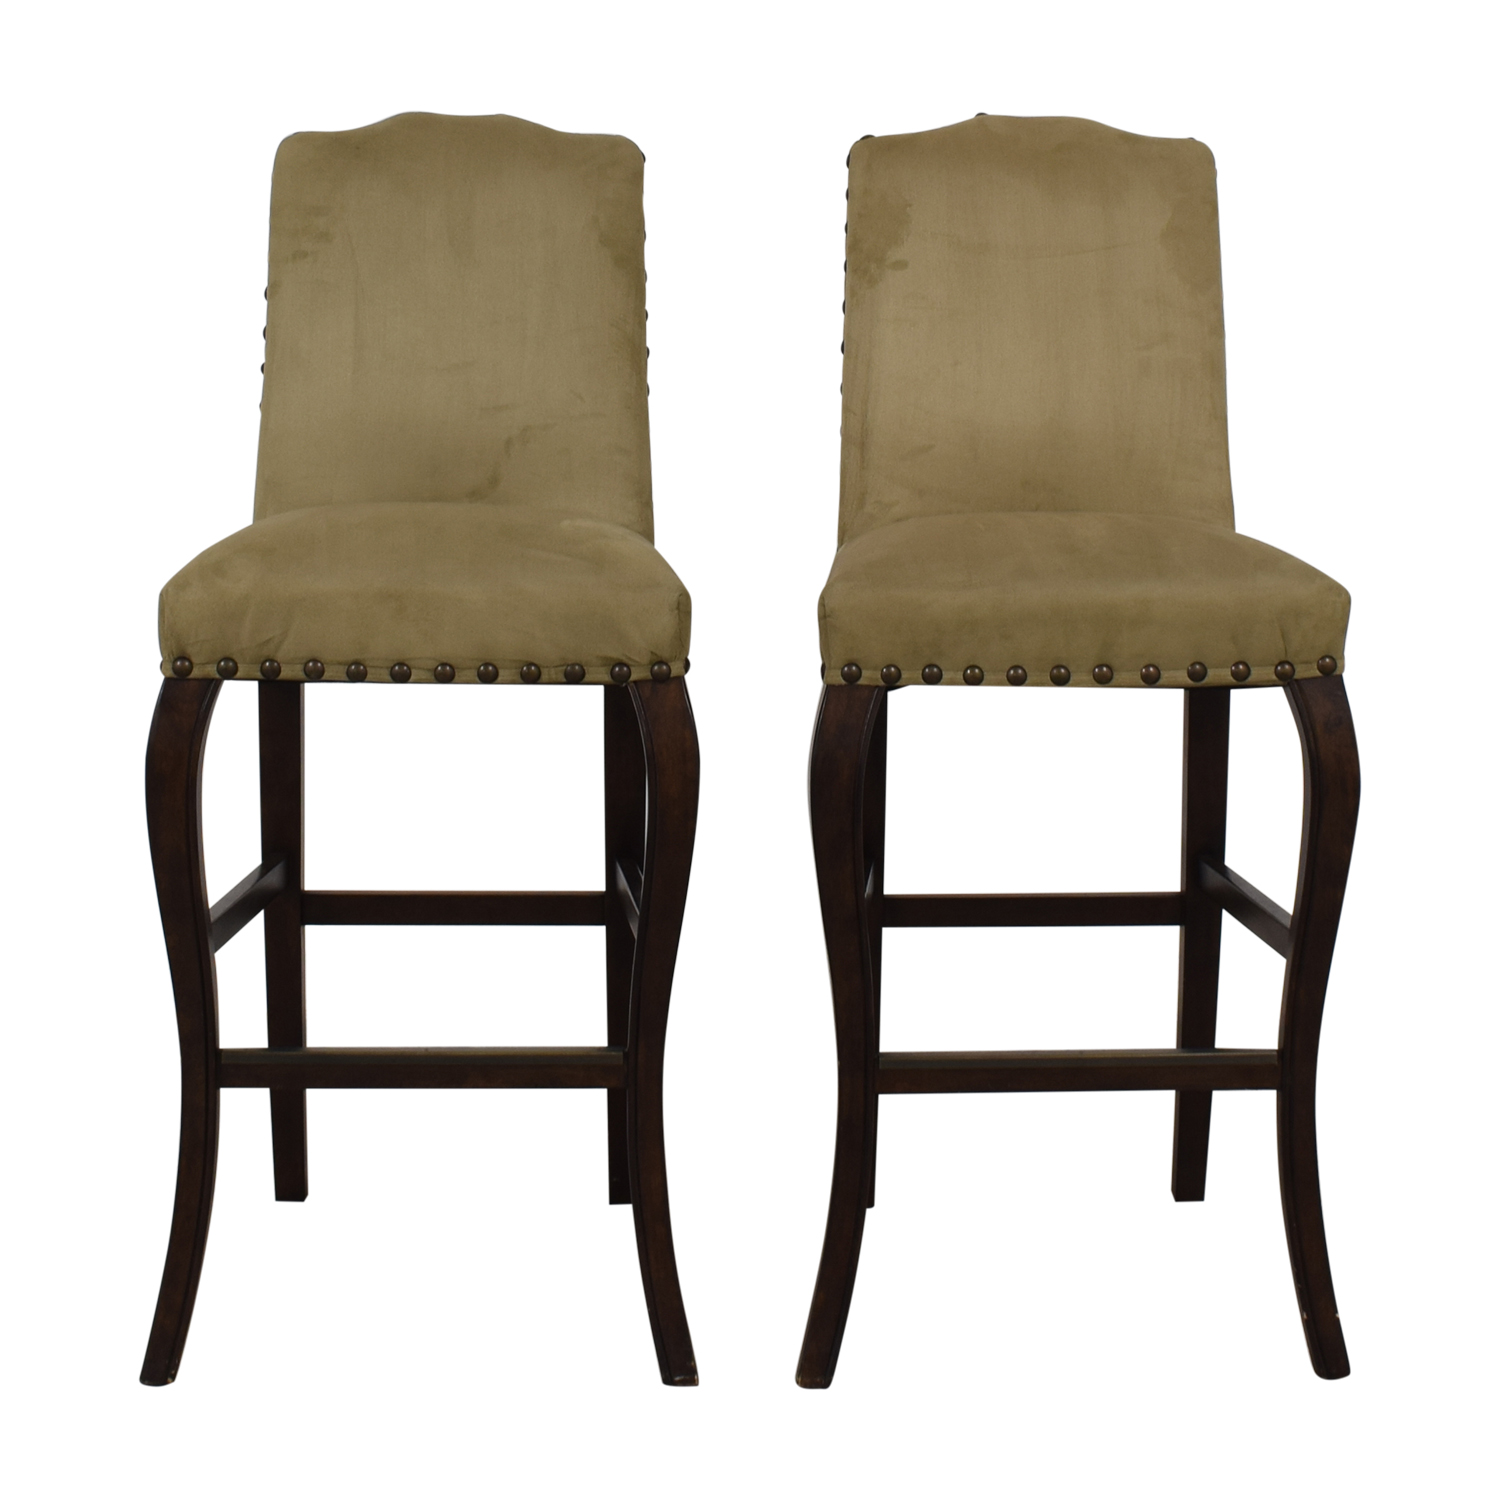 buy William Sonoma Bar Stools Williams Sonoma Stools